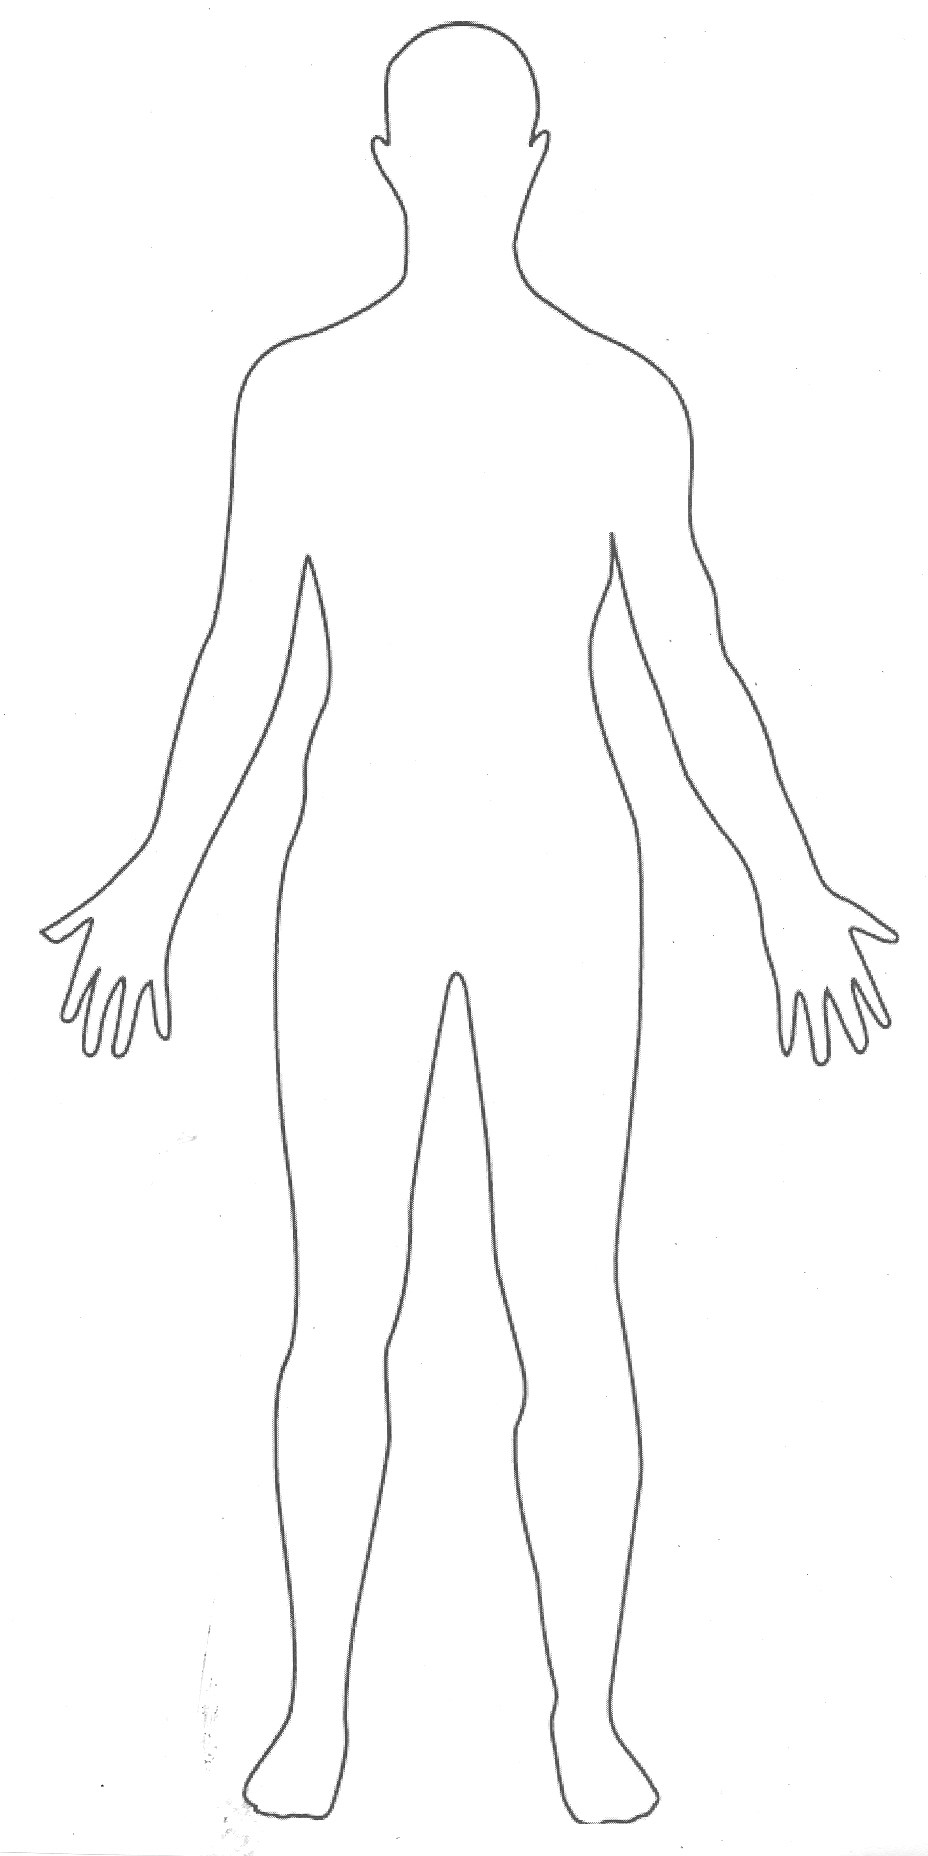 Free Outline Of Person, Download Free Clip Art, Free Clip